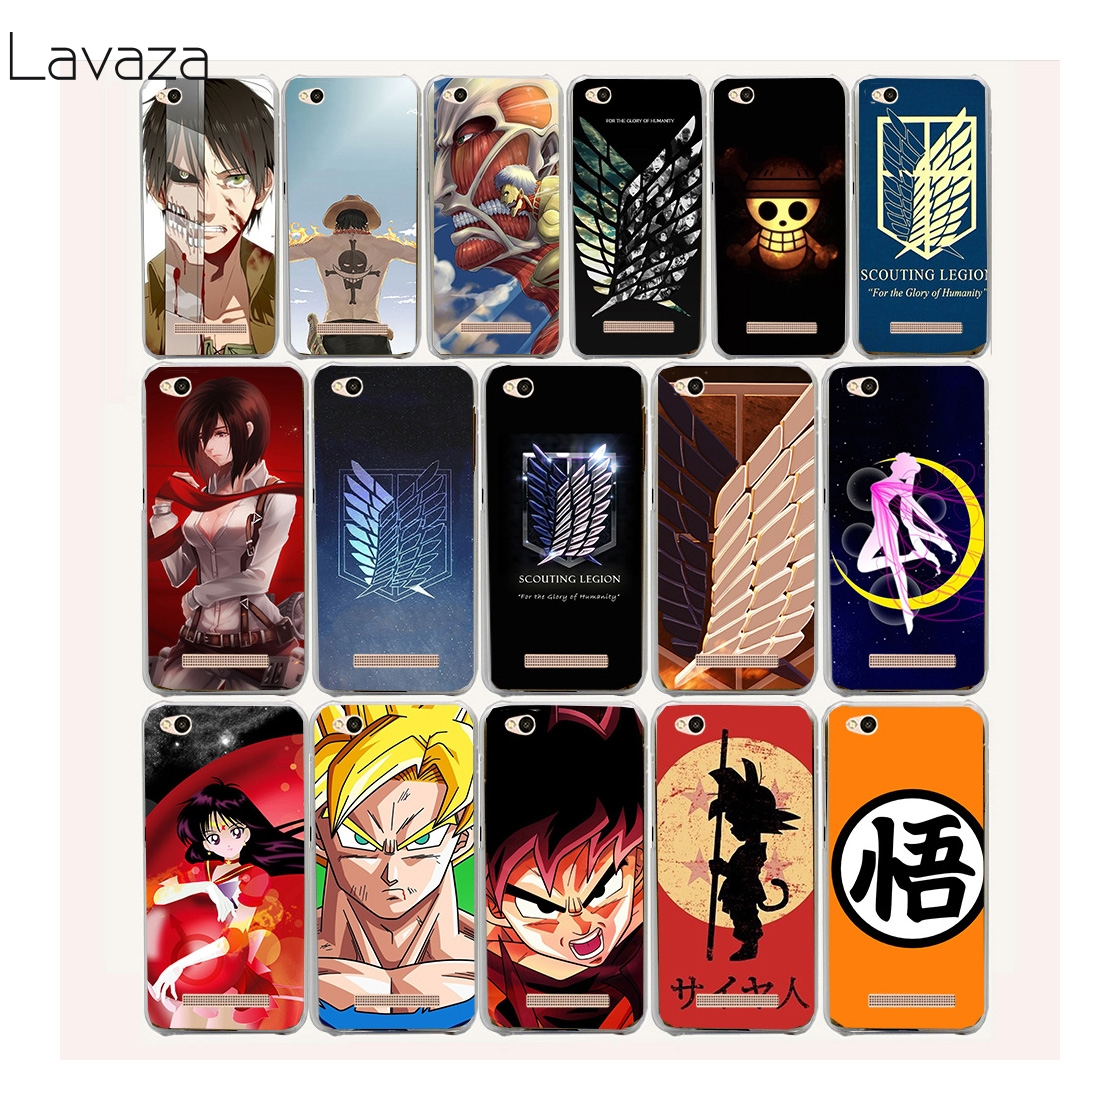 Lavaza 8af Anime Japanese attack on Titan Hard Case for Xiaomi Mi a1 5 6 5S Redmi 5 Plus 5a 4X 4 4A Pro Note 5a 4X 3S 3 Pro